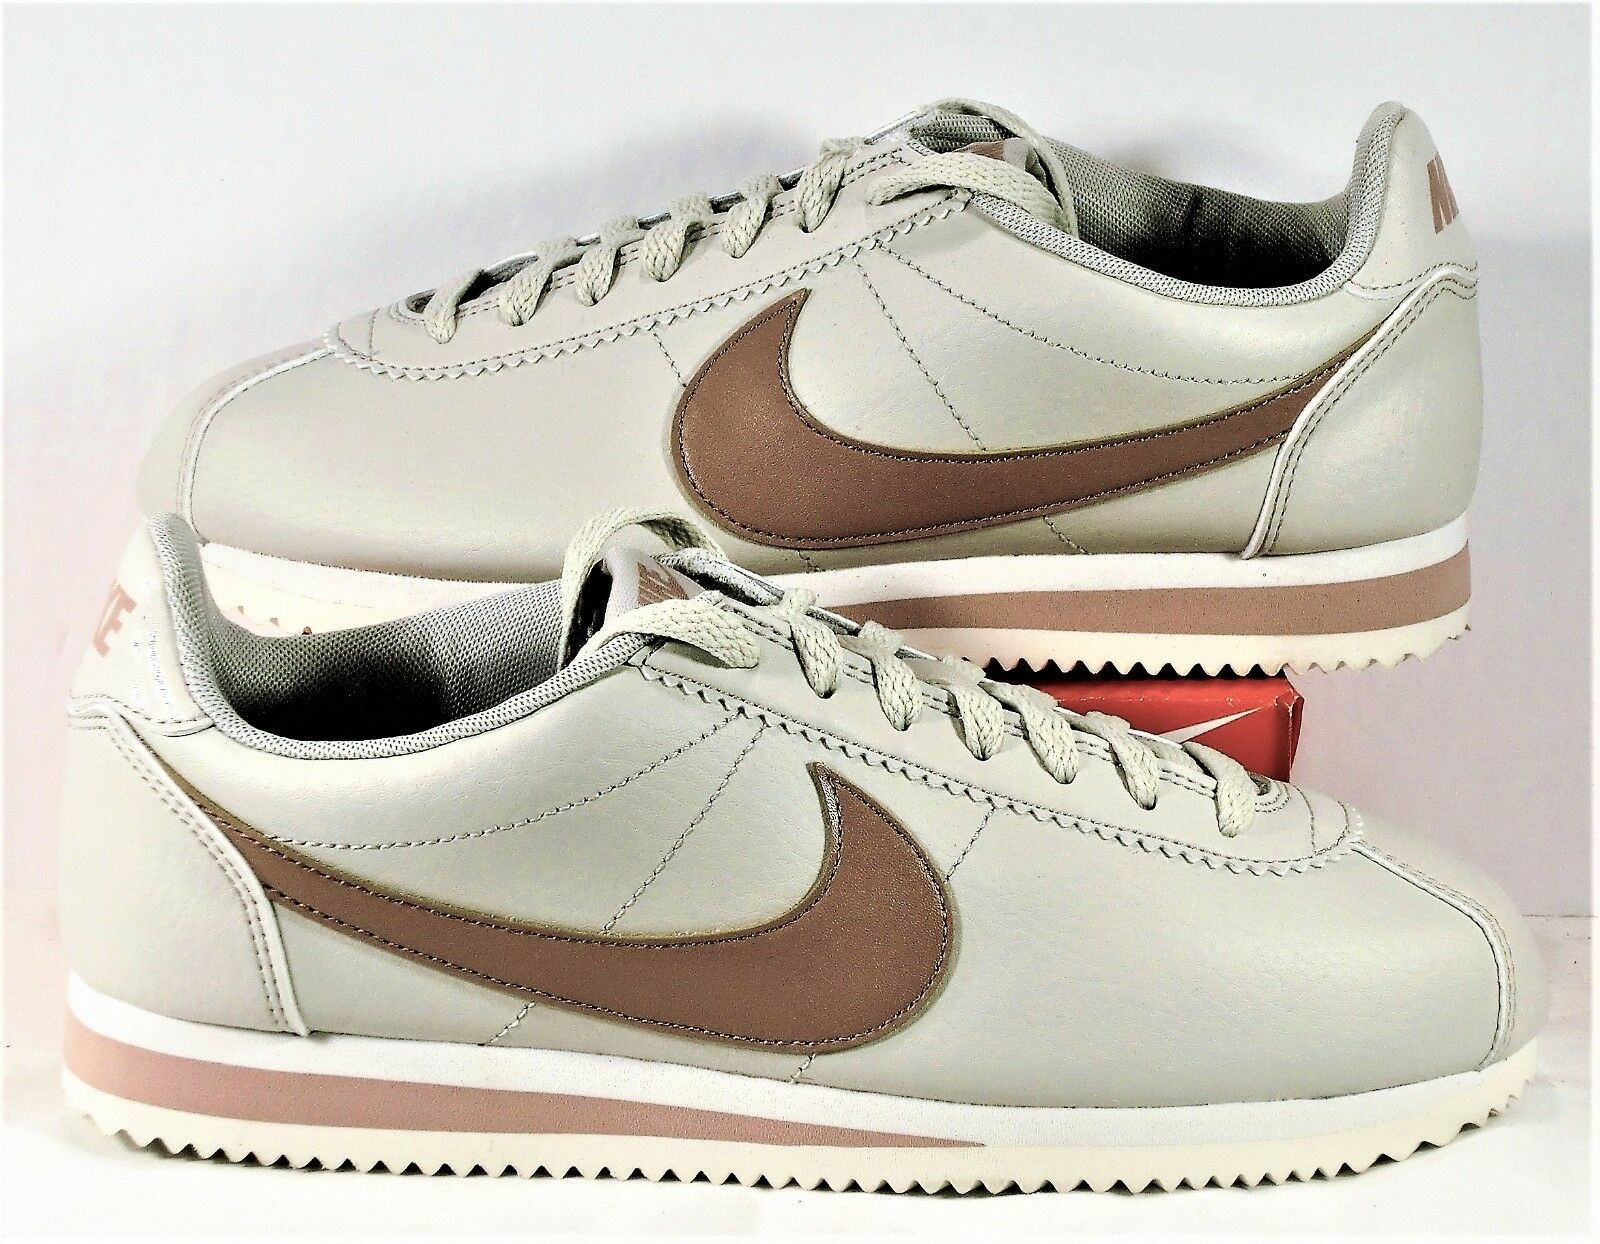 Nike Classic Cortez Leather Light Bone Particle Pink Womens Sz 10 NEW 807471 013 Wild casual shoes